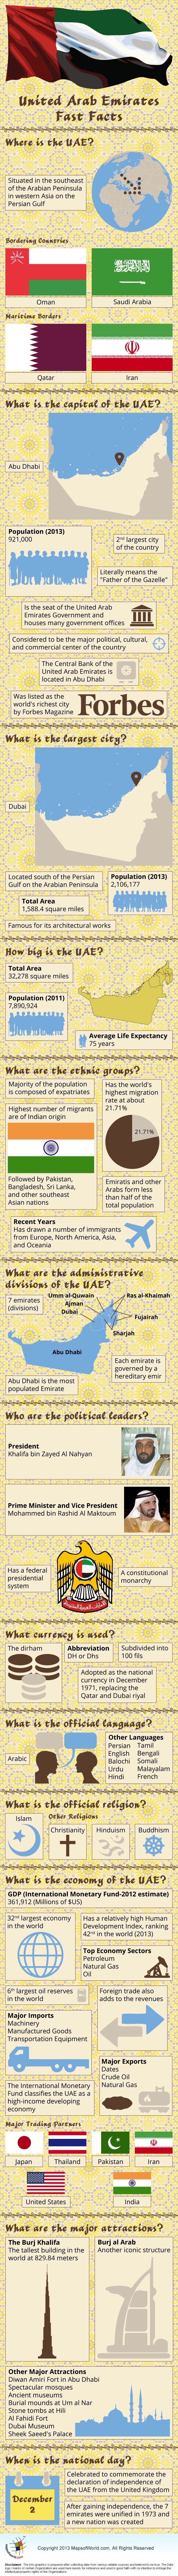 Heres An Infographic Showing Fast Facts About Uae Asia Tas Import Tammy Pocket Gratis Hijab Instan Najwa